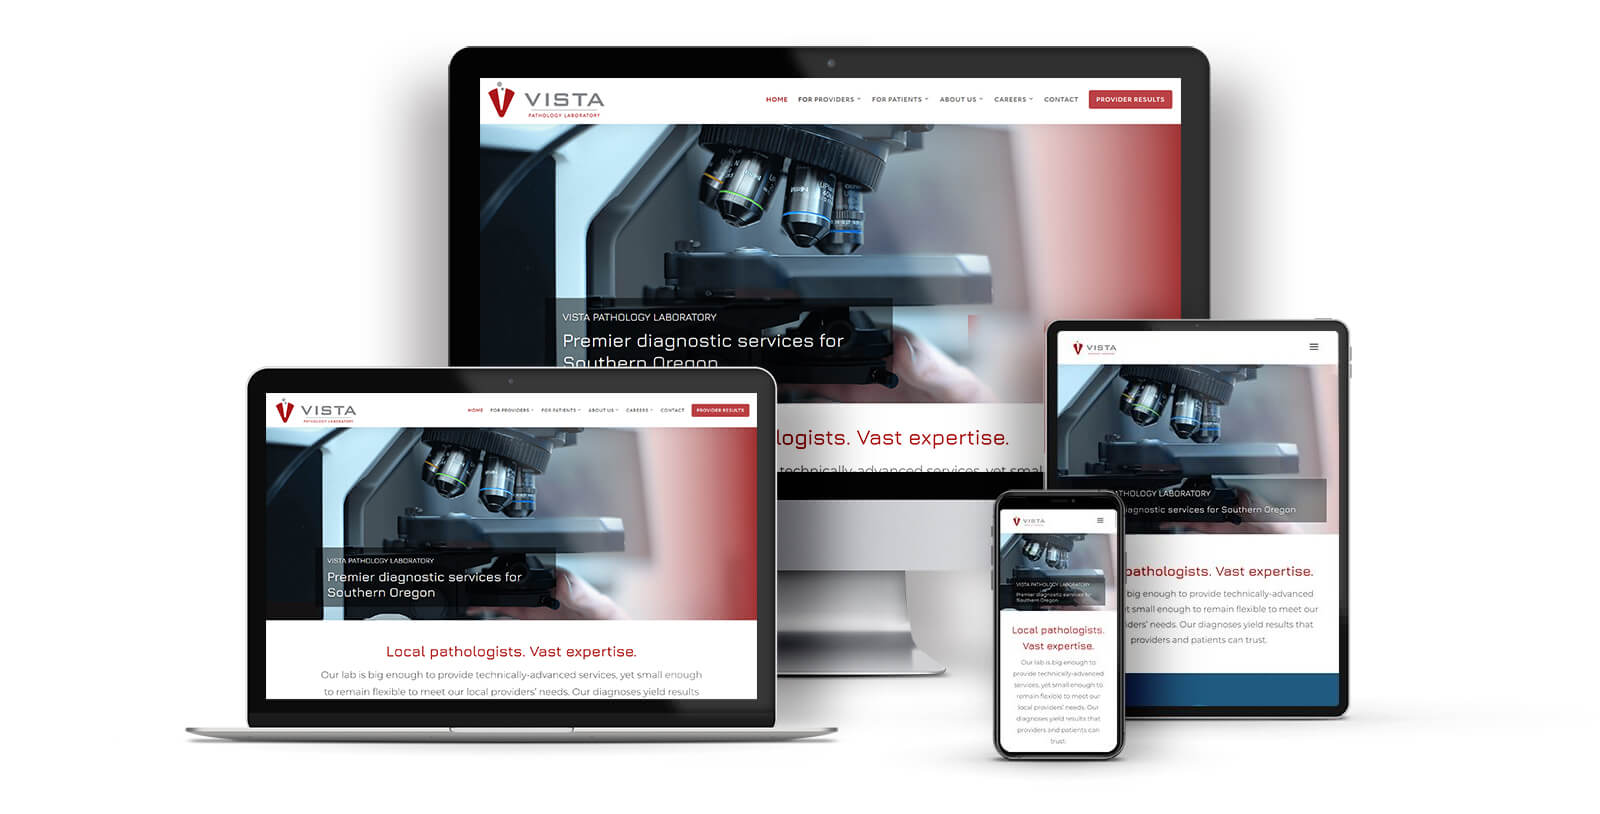 Vista Pathology Lab Responsive Design